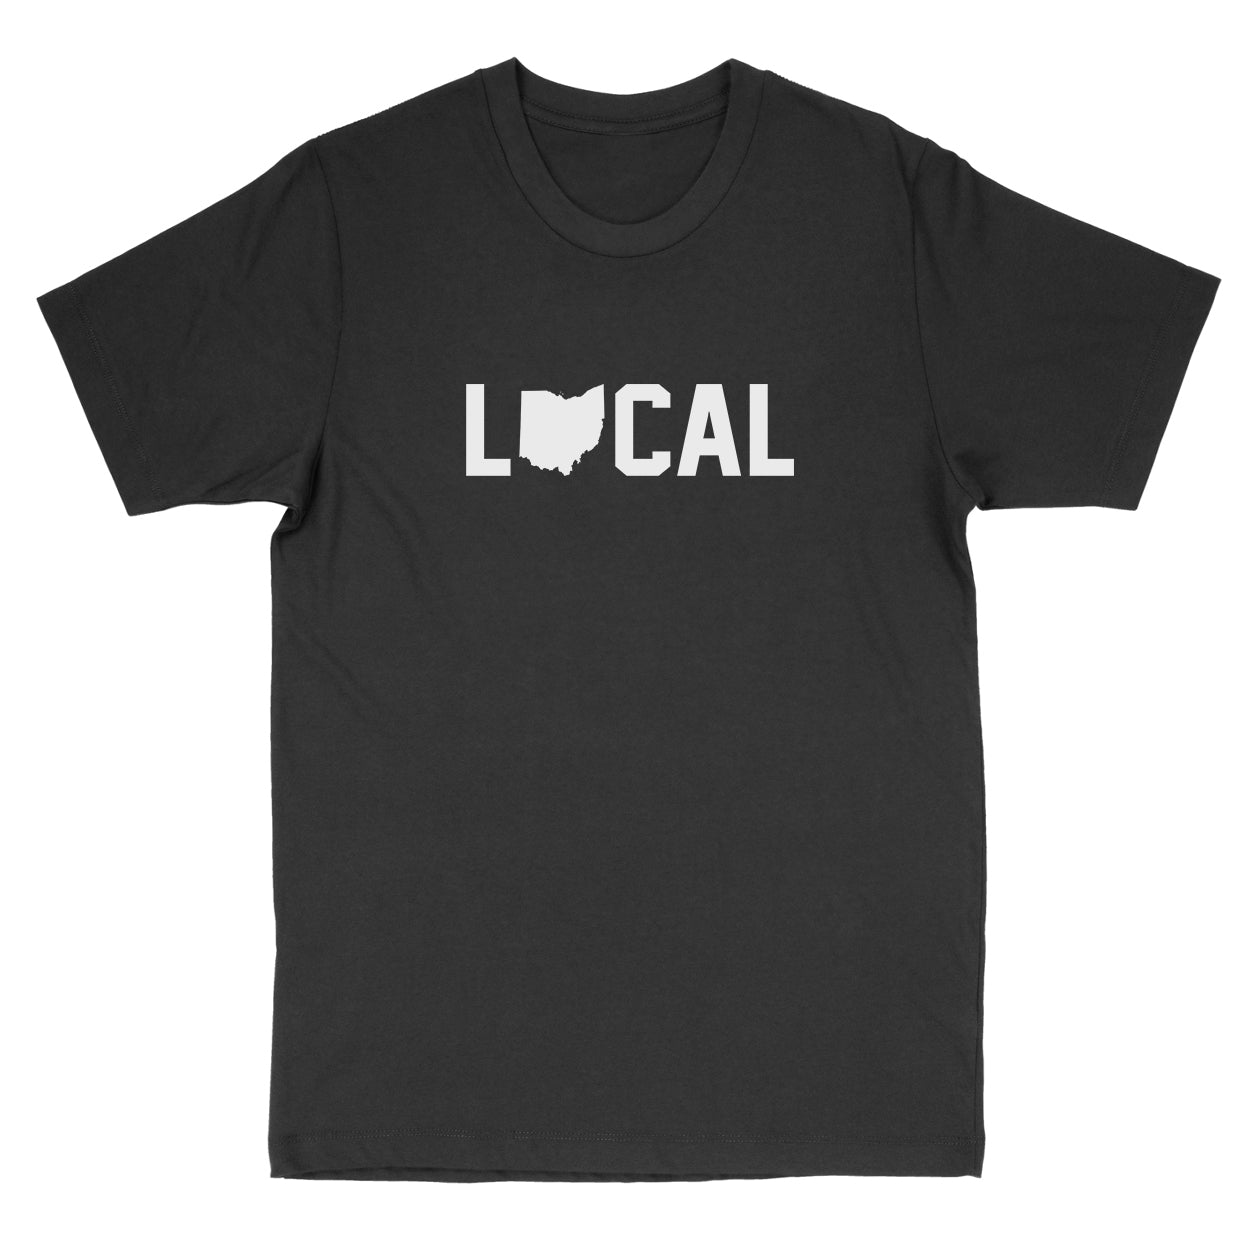 Ohio Local Men's T-Shirt - Clothe Ohio - Soft Ohio Shirts